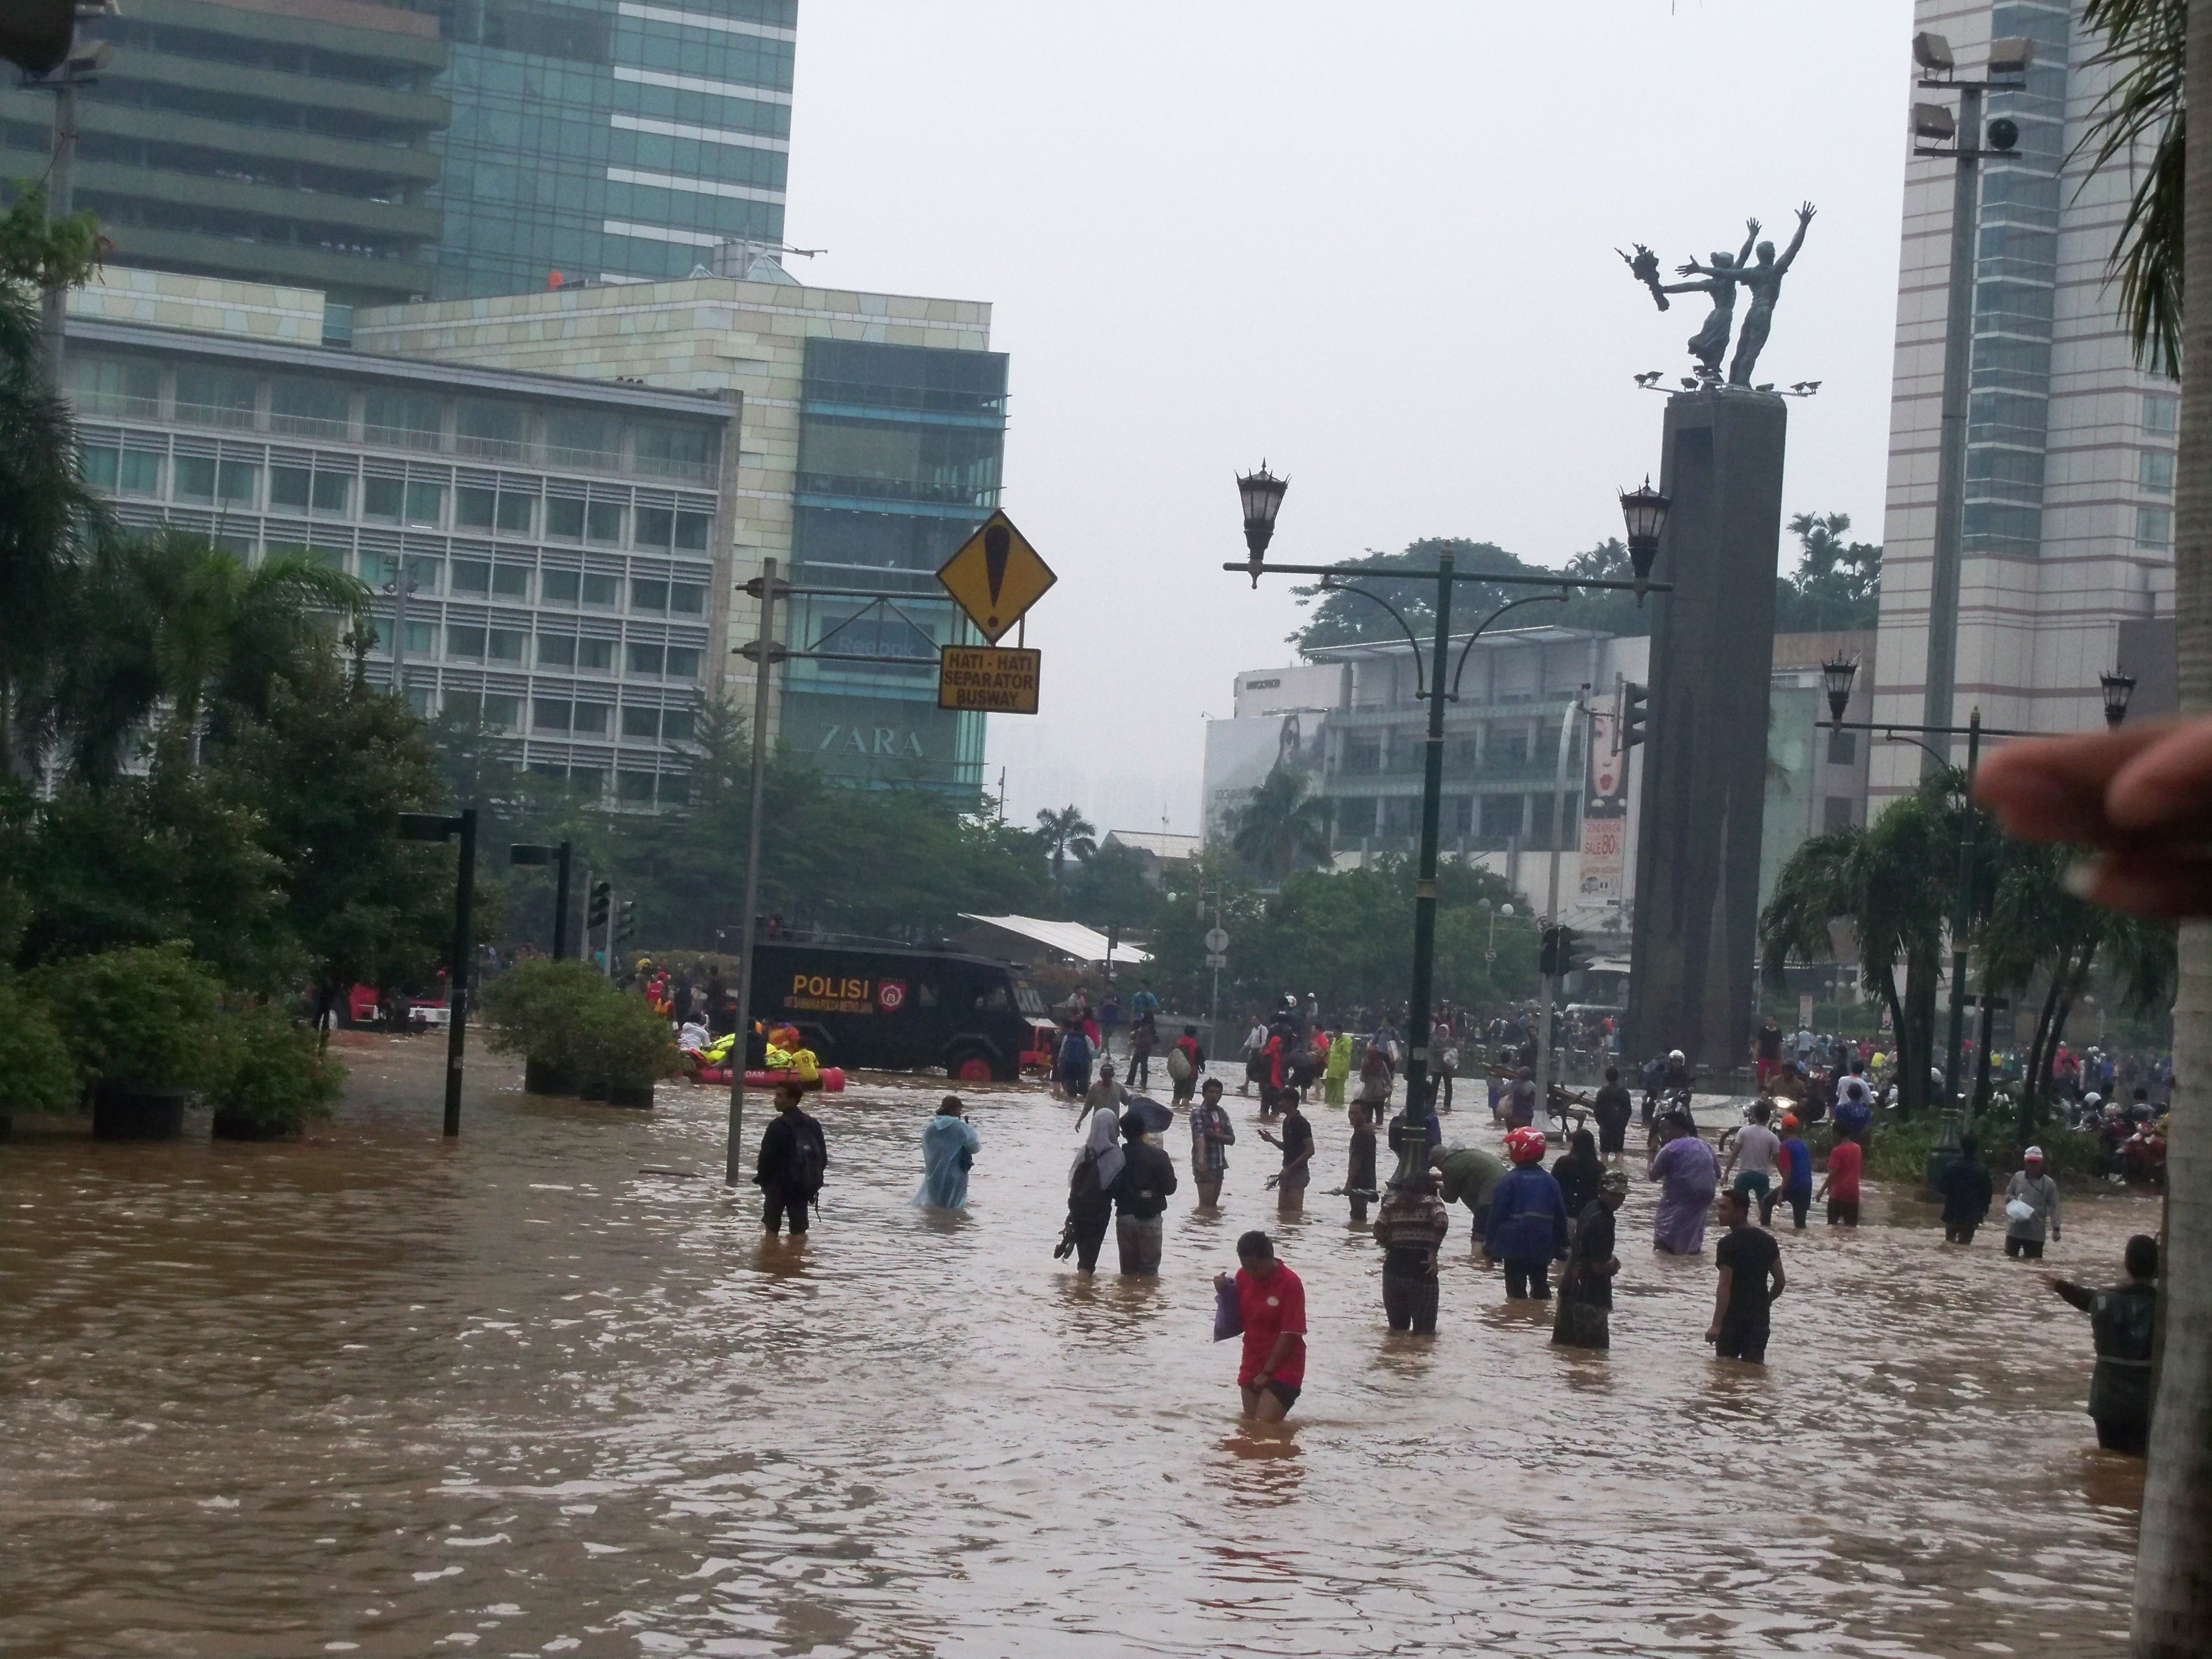 Jakarta: epicenter of Indonesia's COVID-19 crisis